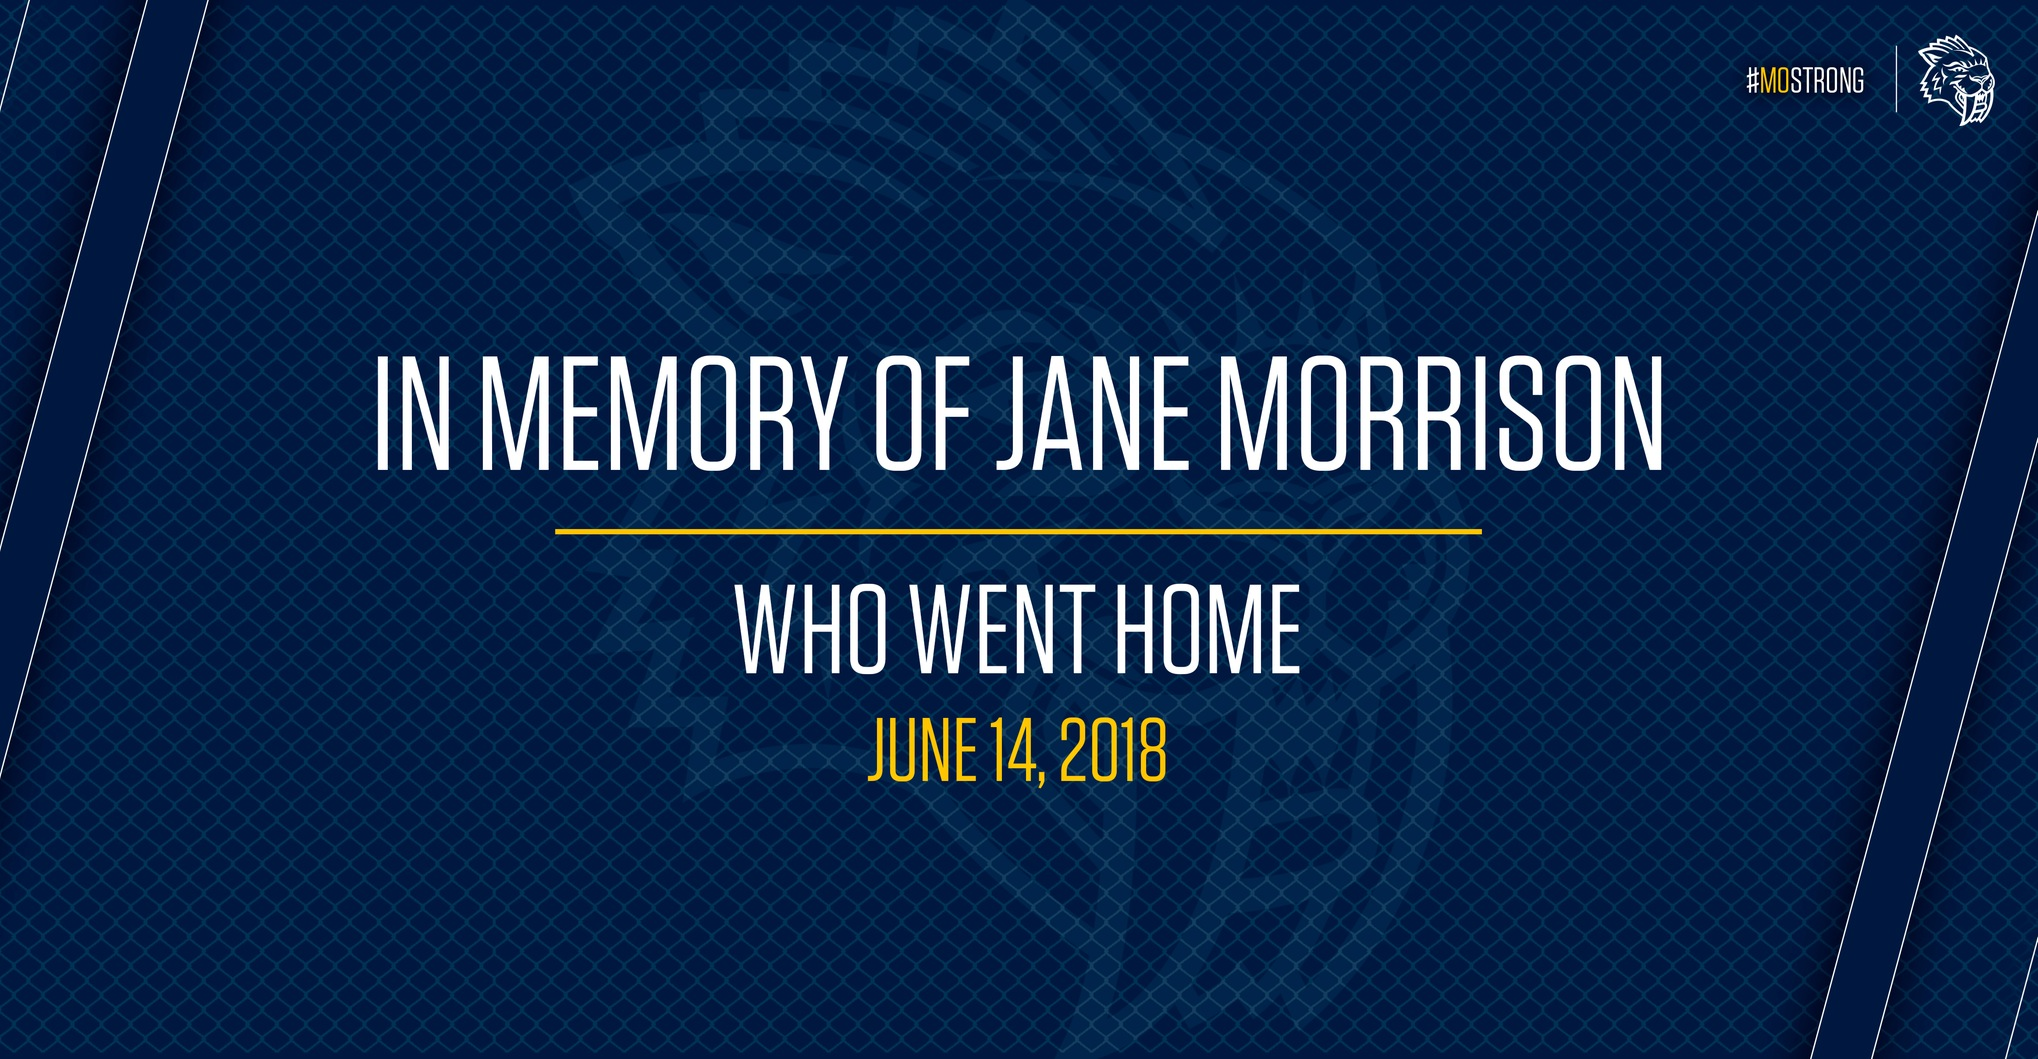 In Memory of Jane Morrison